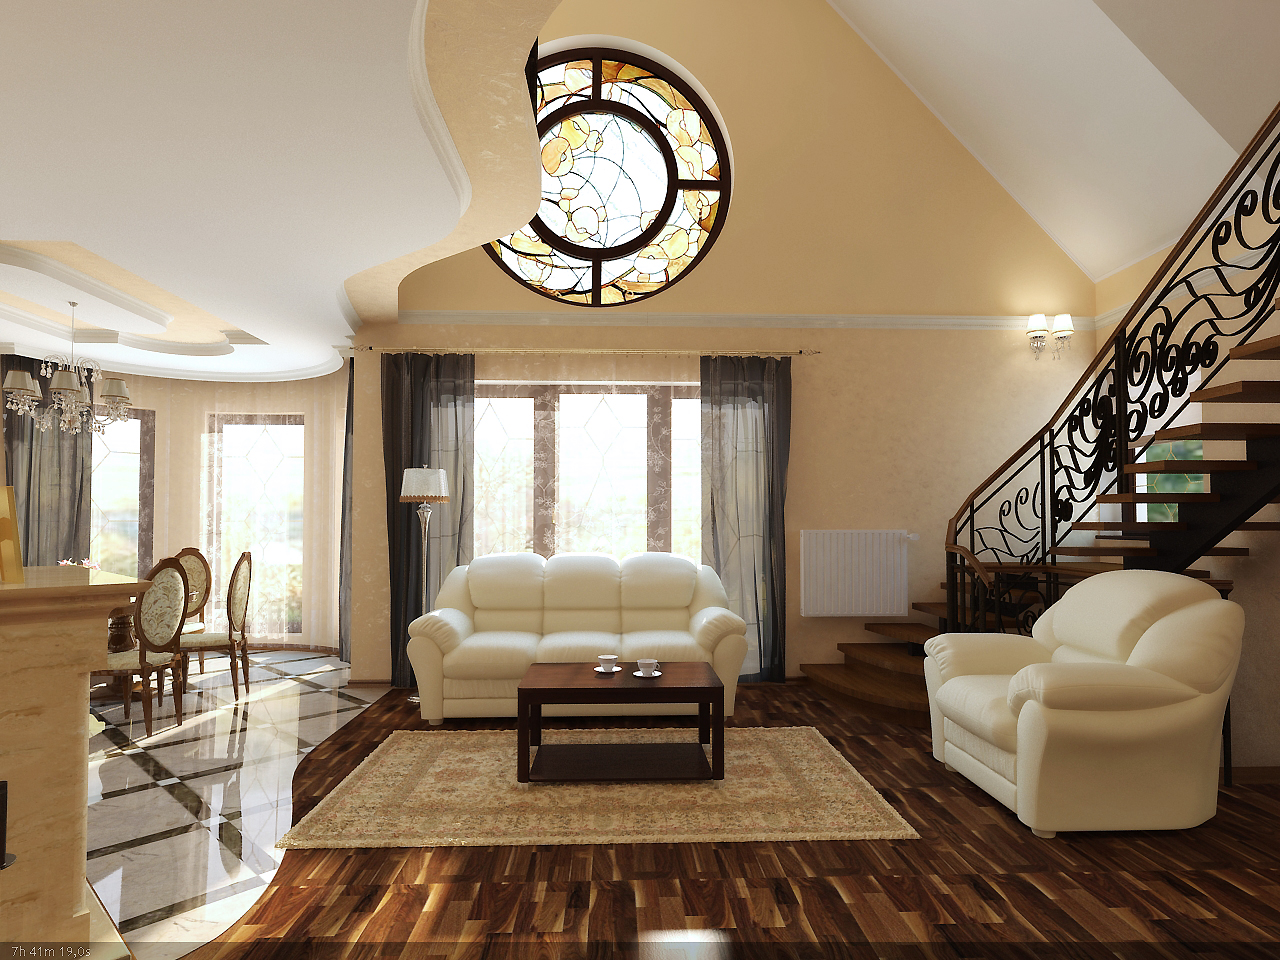 Living Room Home Design Interior classic interior design home interior